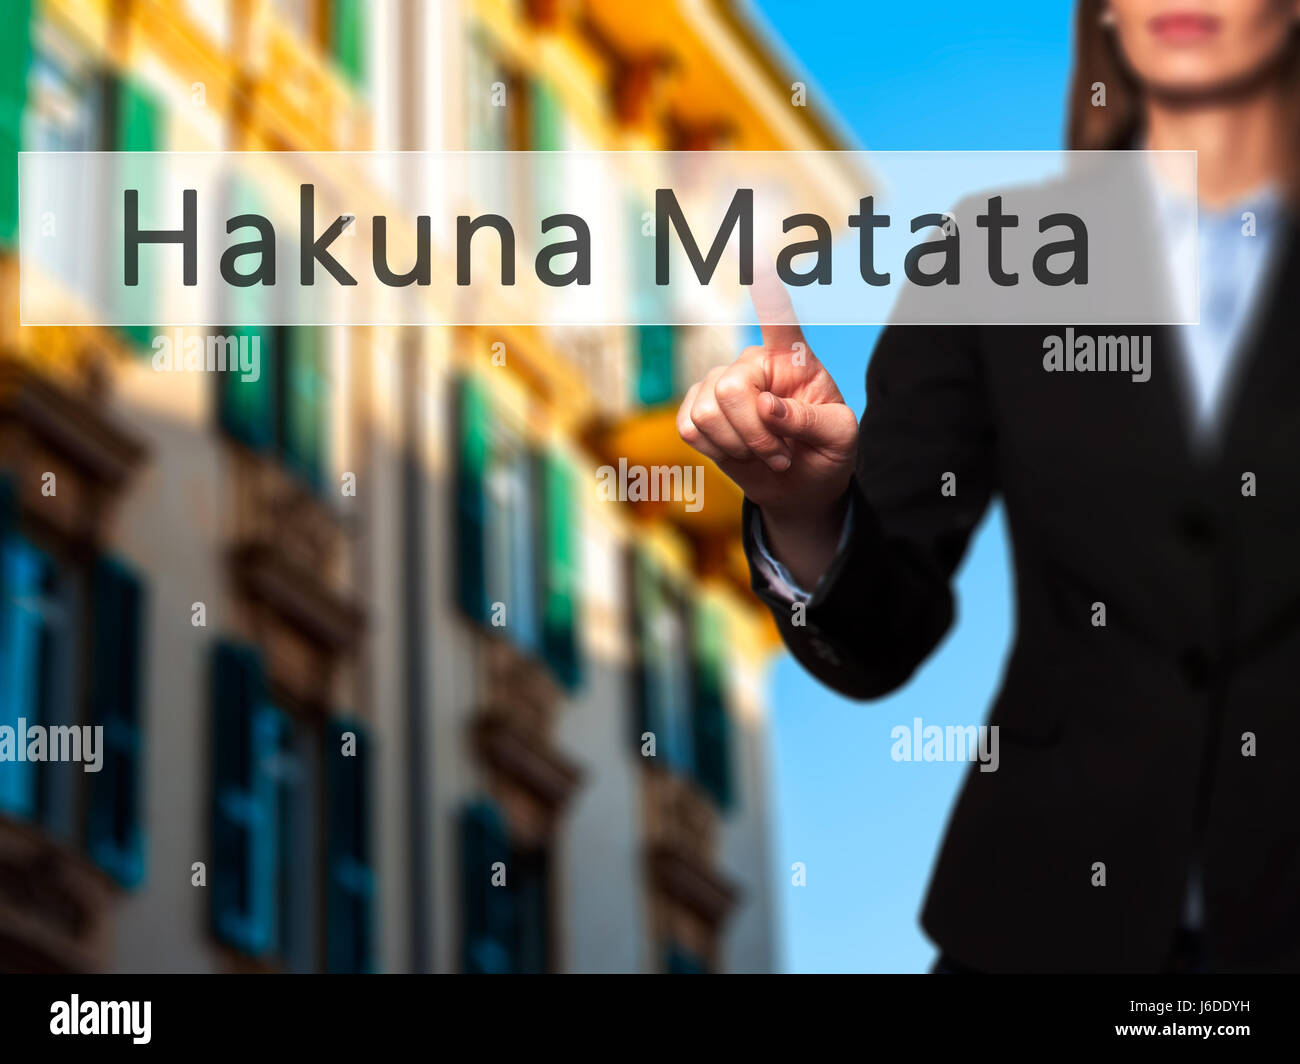 Hakuna Matata (Swahili phrase it means no worries) - Businesswoman hand pressing button on touch screen interface. - Stock Image